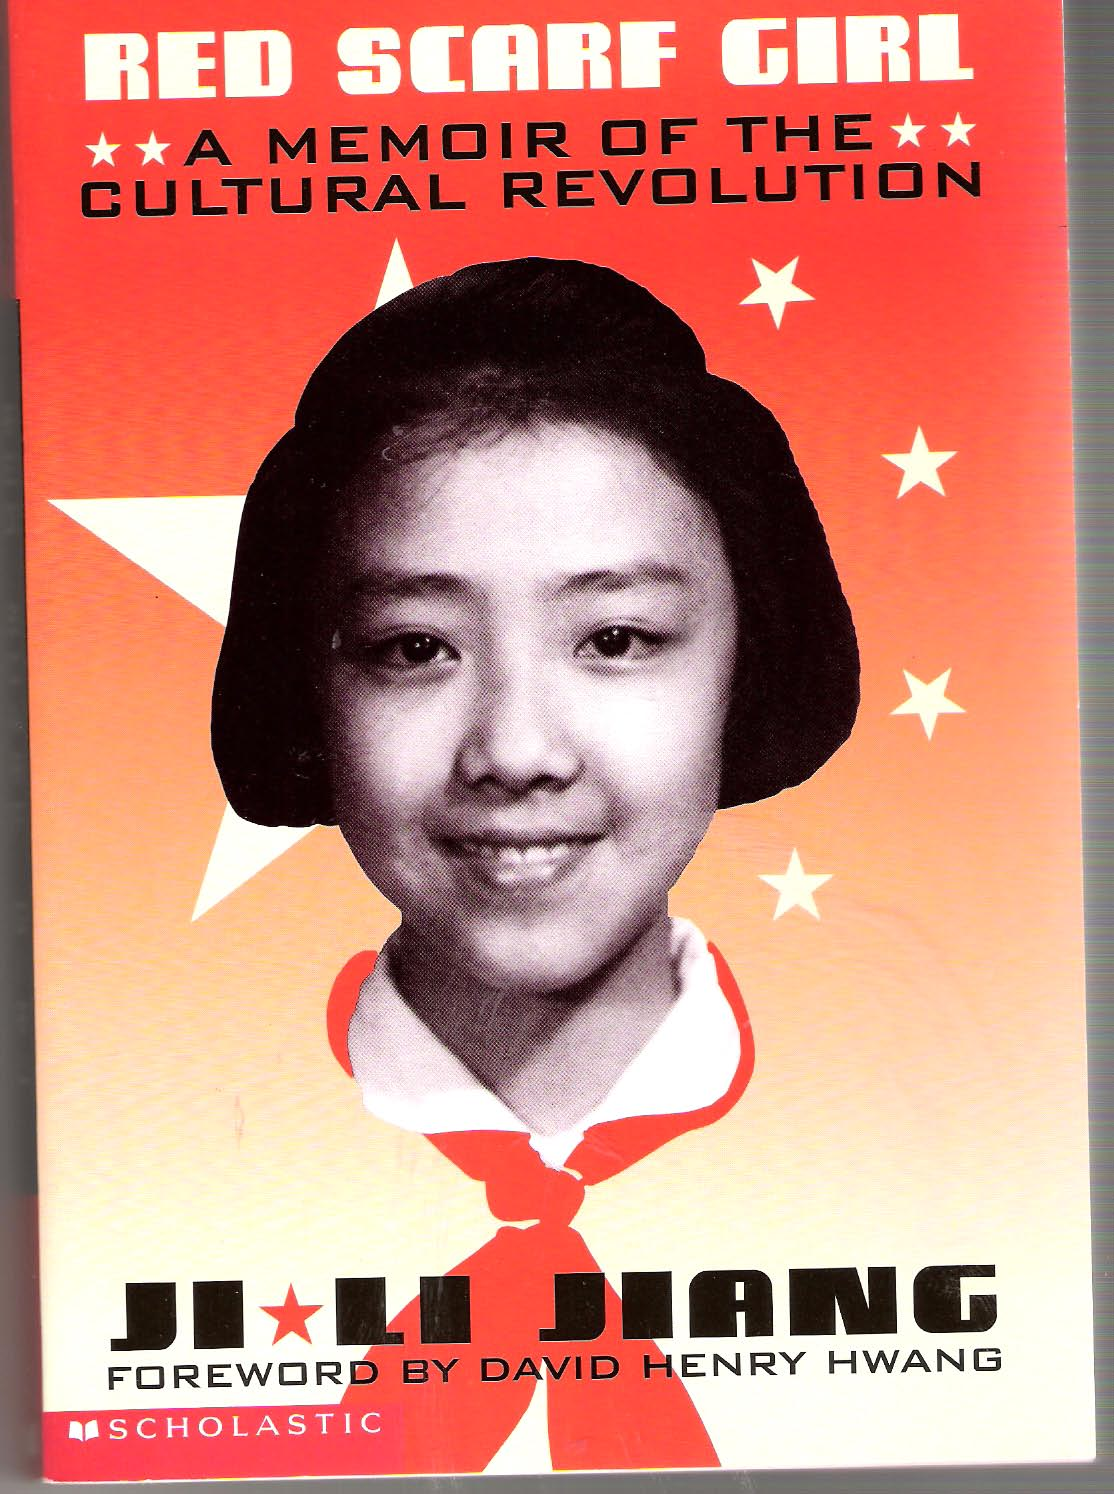 a report of the life of jiang ji li and her family during the cultural revolution in china Cultural revolution and film---films made about  moring sun red guard clips during the cultural revolution,  and the private life of chairman mao by dr li.